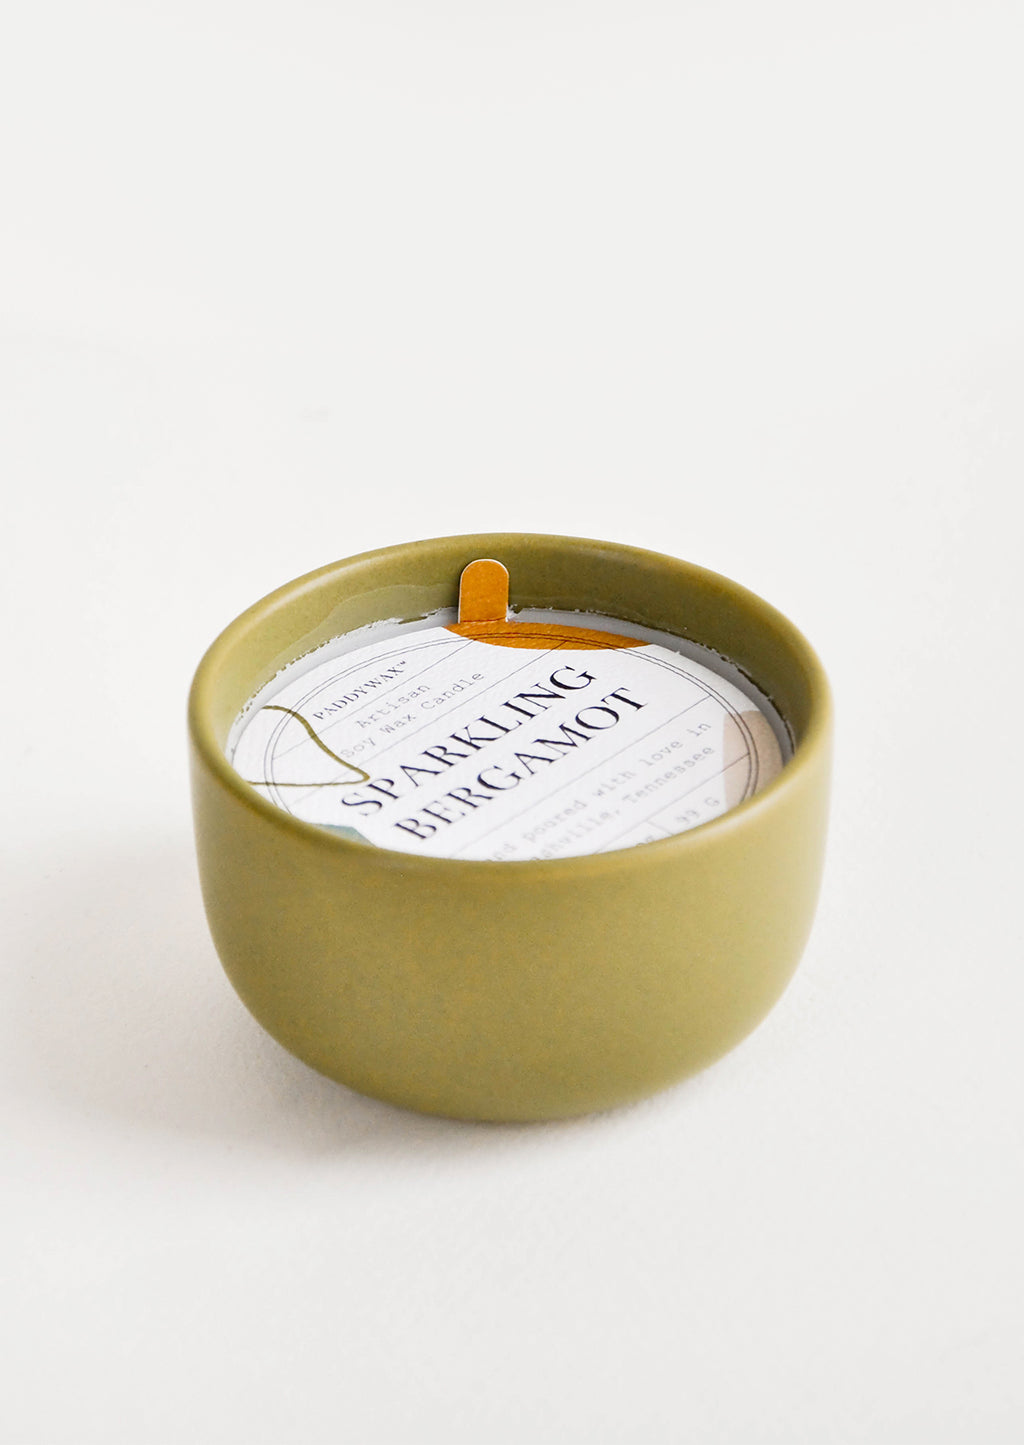 Sparkling Bergamot: Small scented candle in colorful olive green ceramic vessel